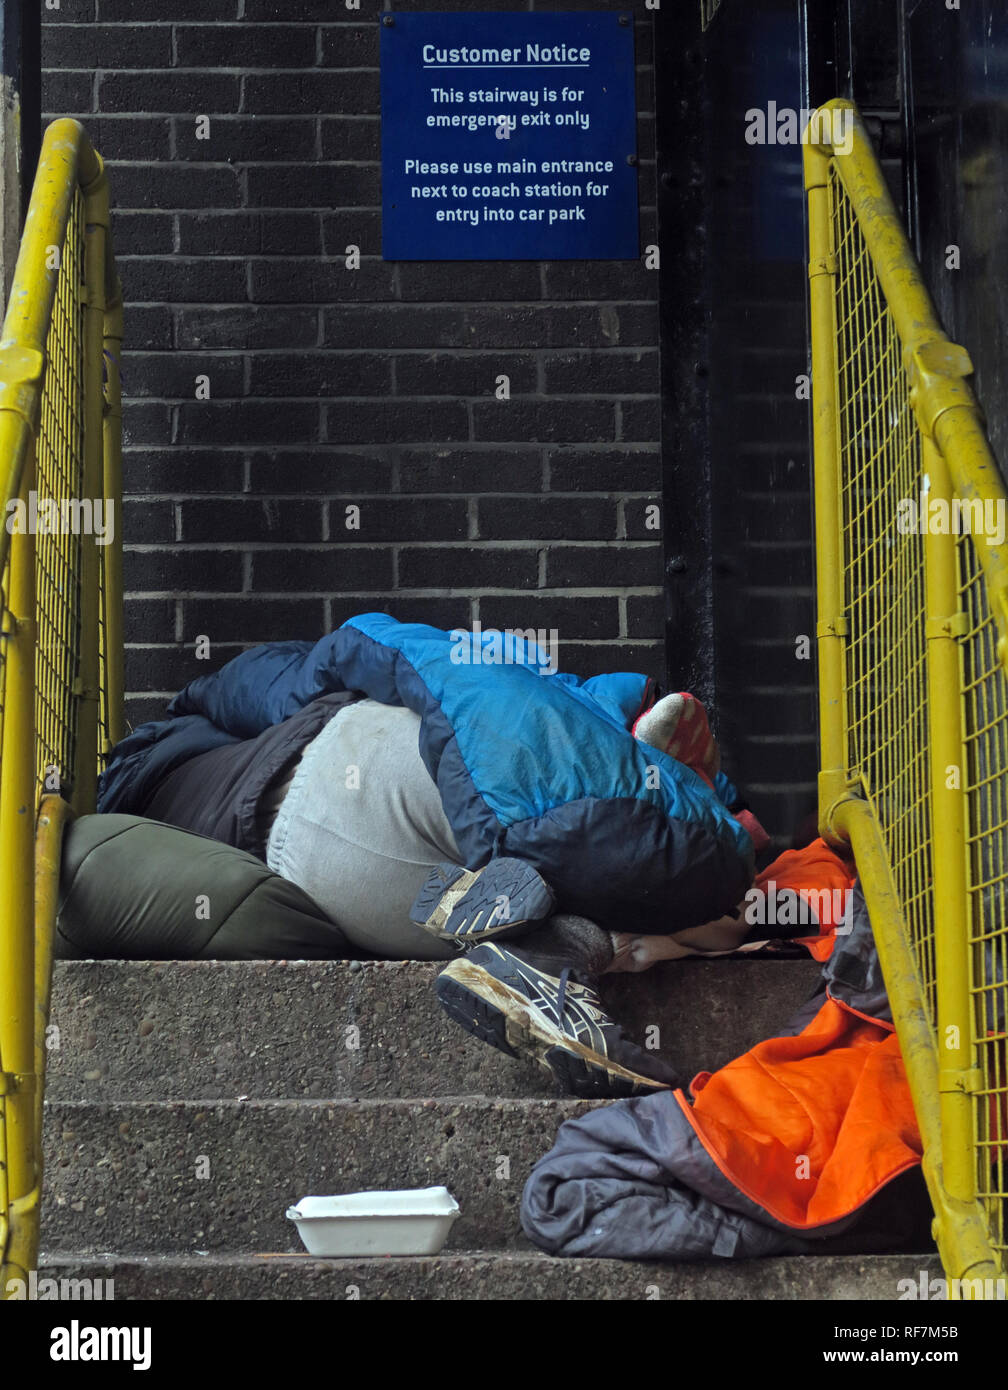 Homeless person sleeping rough, in a car park stairwell, Bus station,Chorlton St, Manchester, M1 3JF - Stock Image